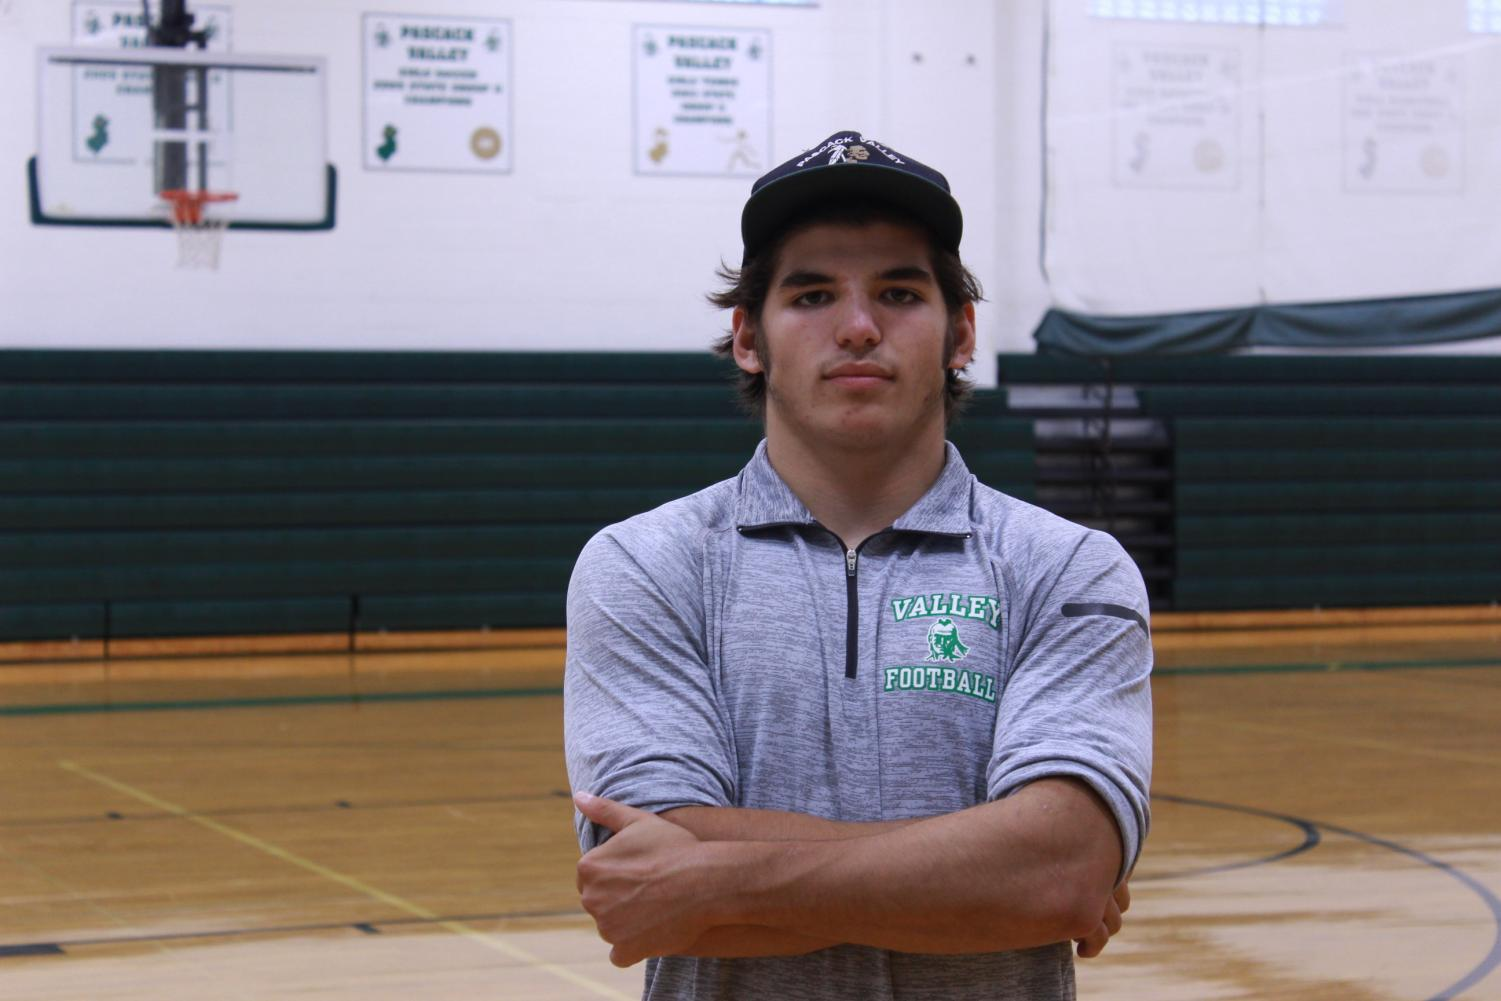 Stephen Soravilla is the Smoke Signal's Athlete of Week for the week of October 8.